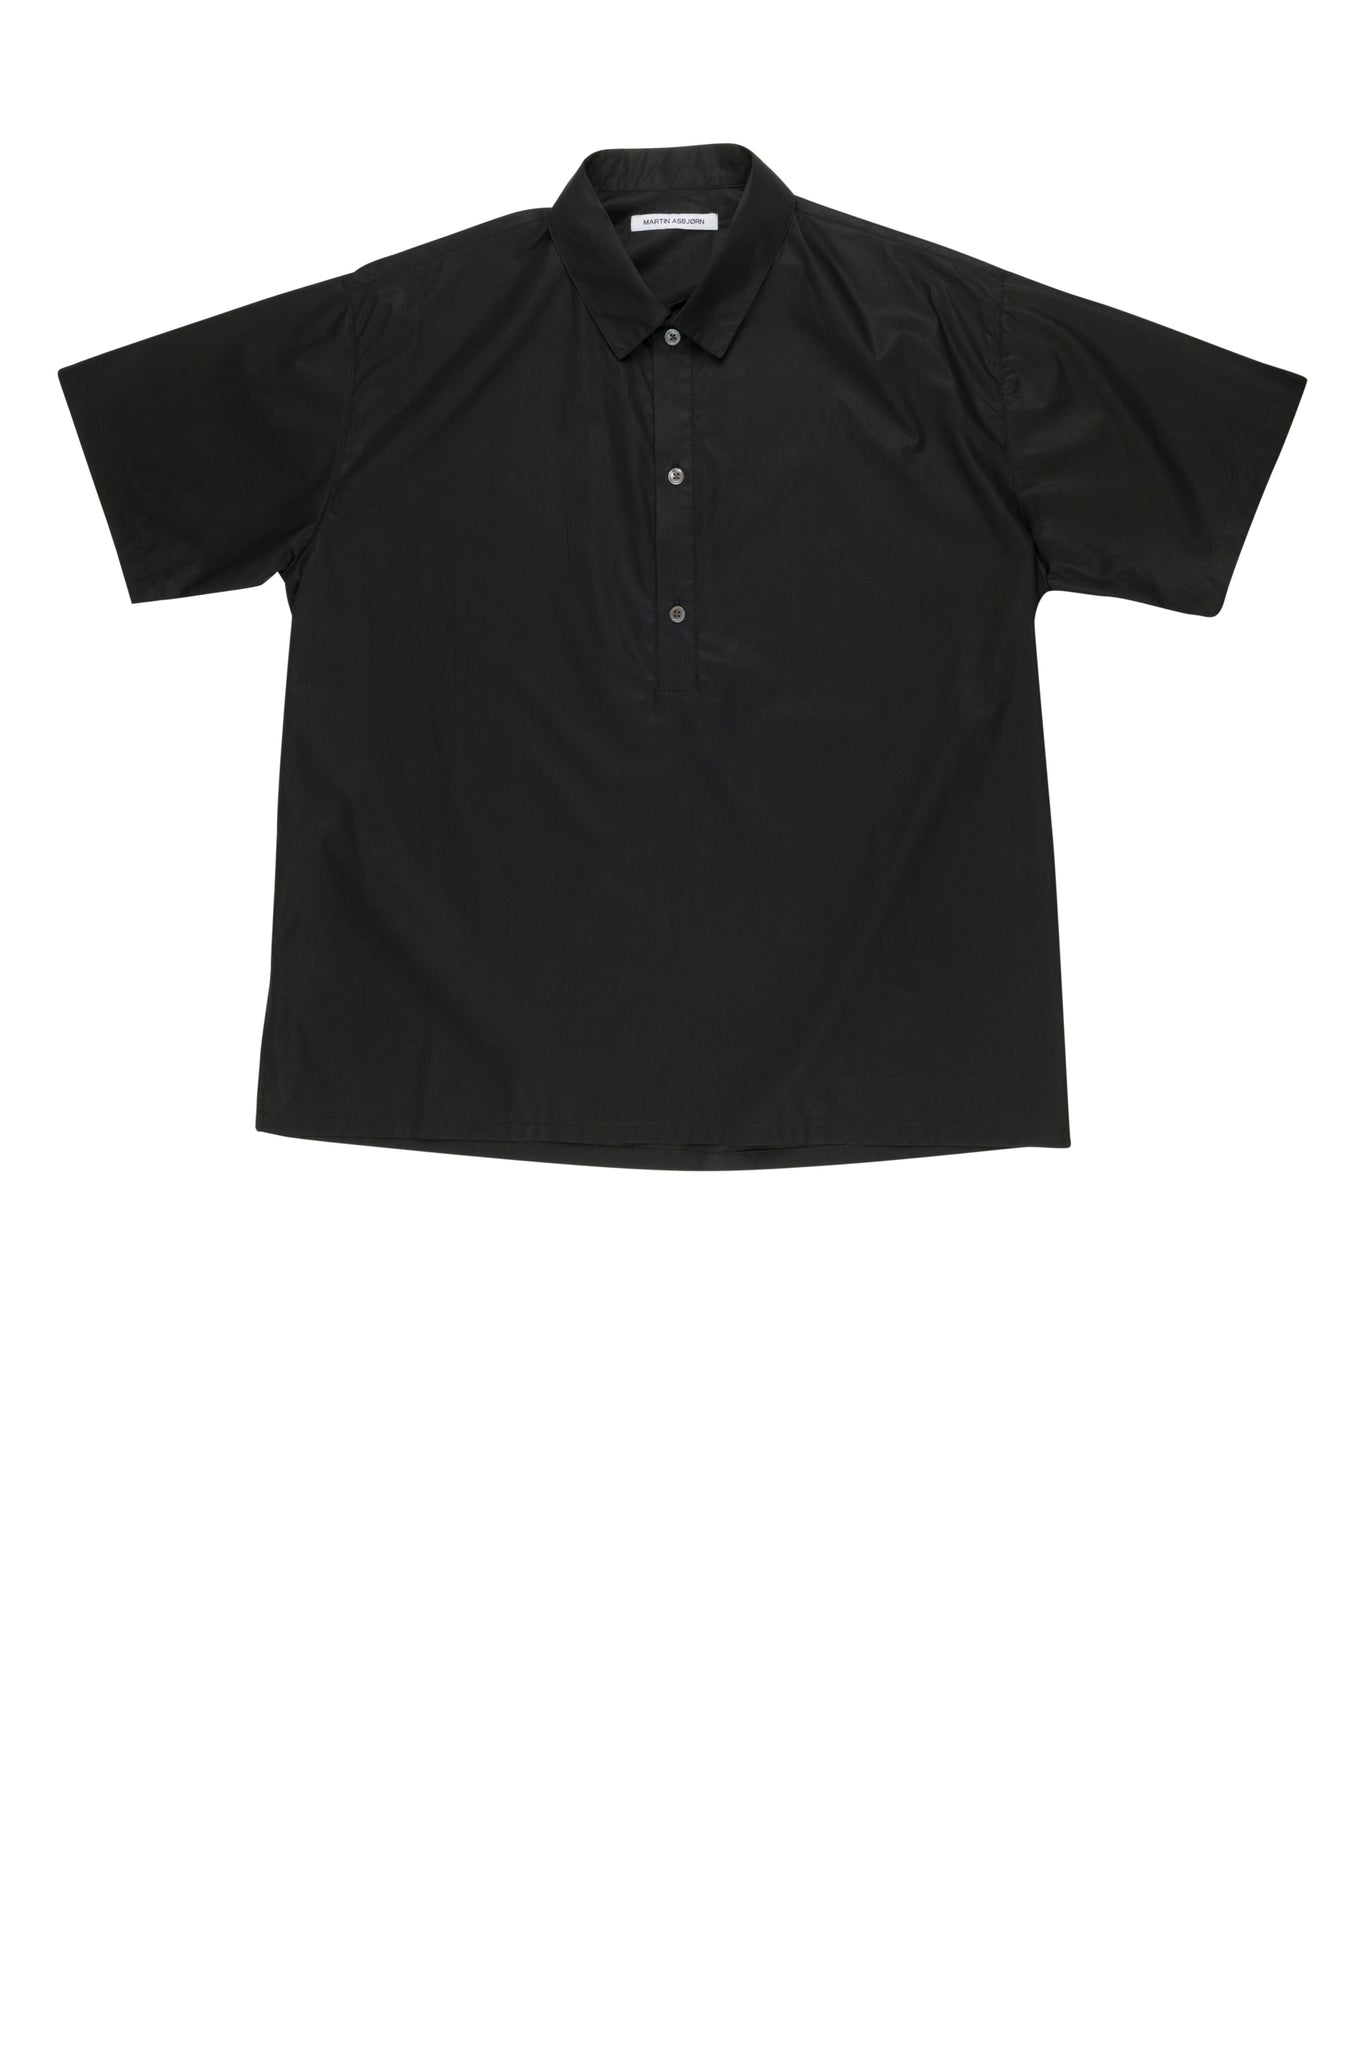 Martin Asbjorn Greenleaf shirt in black poplin ss20 menswear